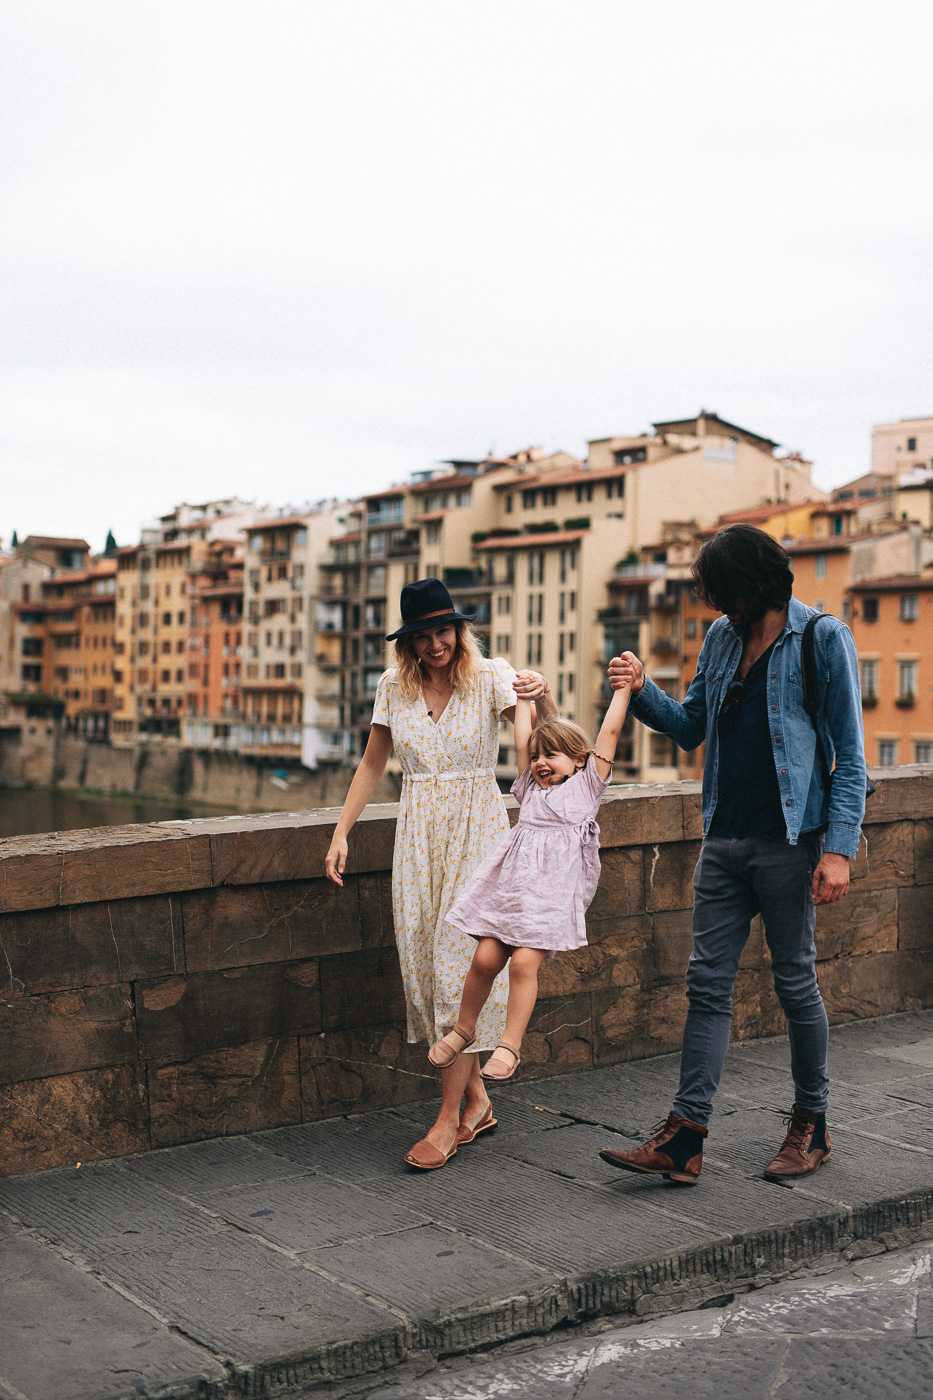 //euphoriawedding.com/wp-content/uploads/2019/11/Family-Photoshoot_Florence_WEB-184.jpg